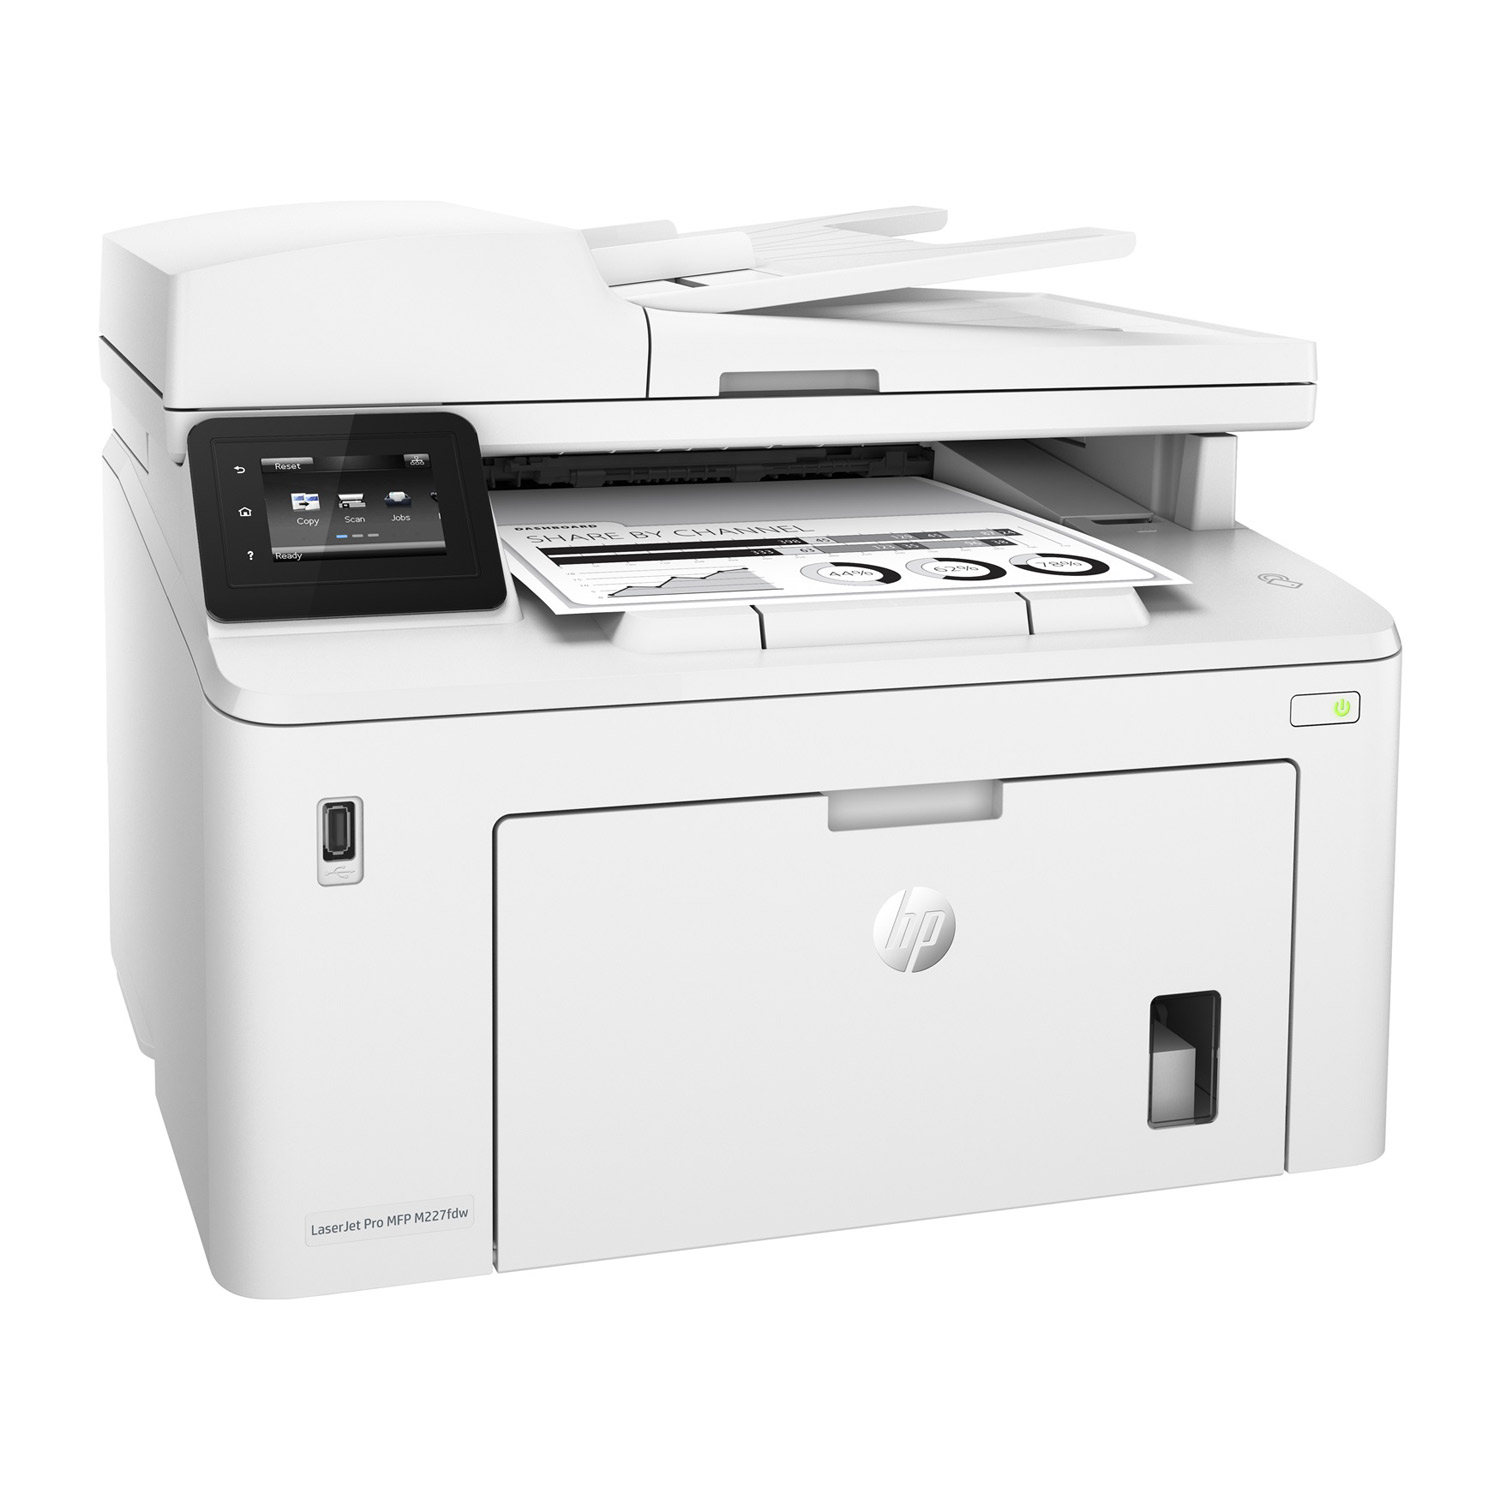 hp laserjet pro mfp m227fdw imprimante multifonction hp. Black Bedroom Furniture Sets. Home Design Ideas